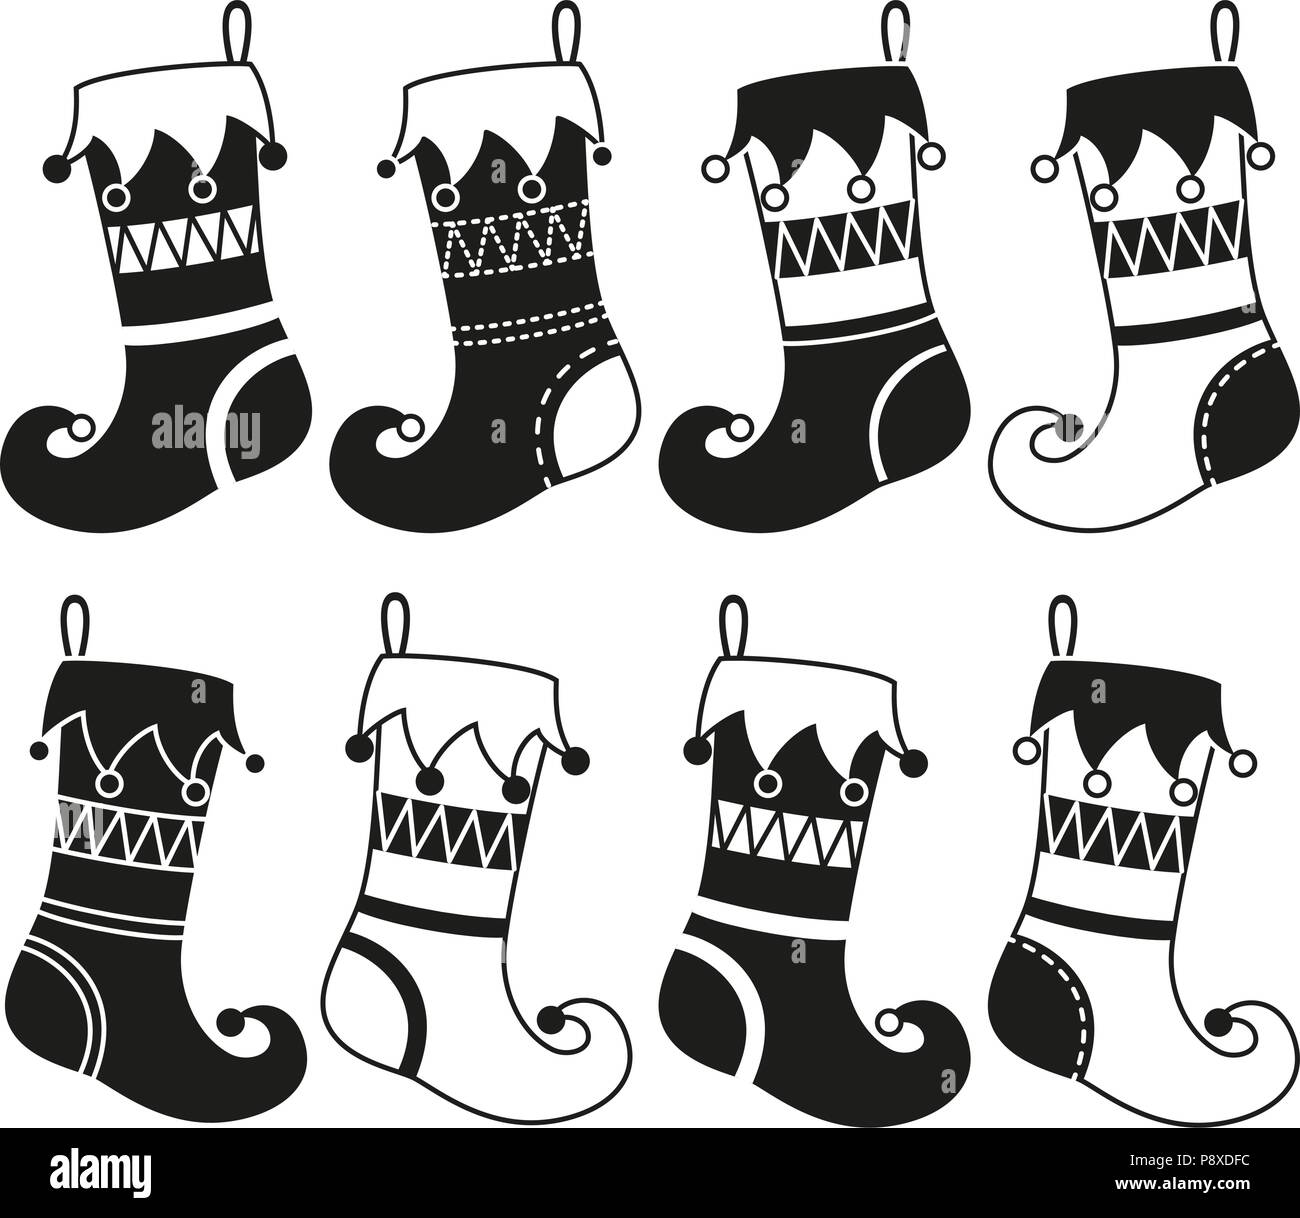 Black And White 8 Christmas Stocking Silhouette Set Holiday Themed